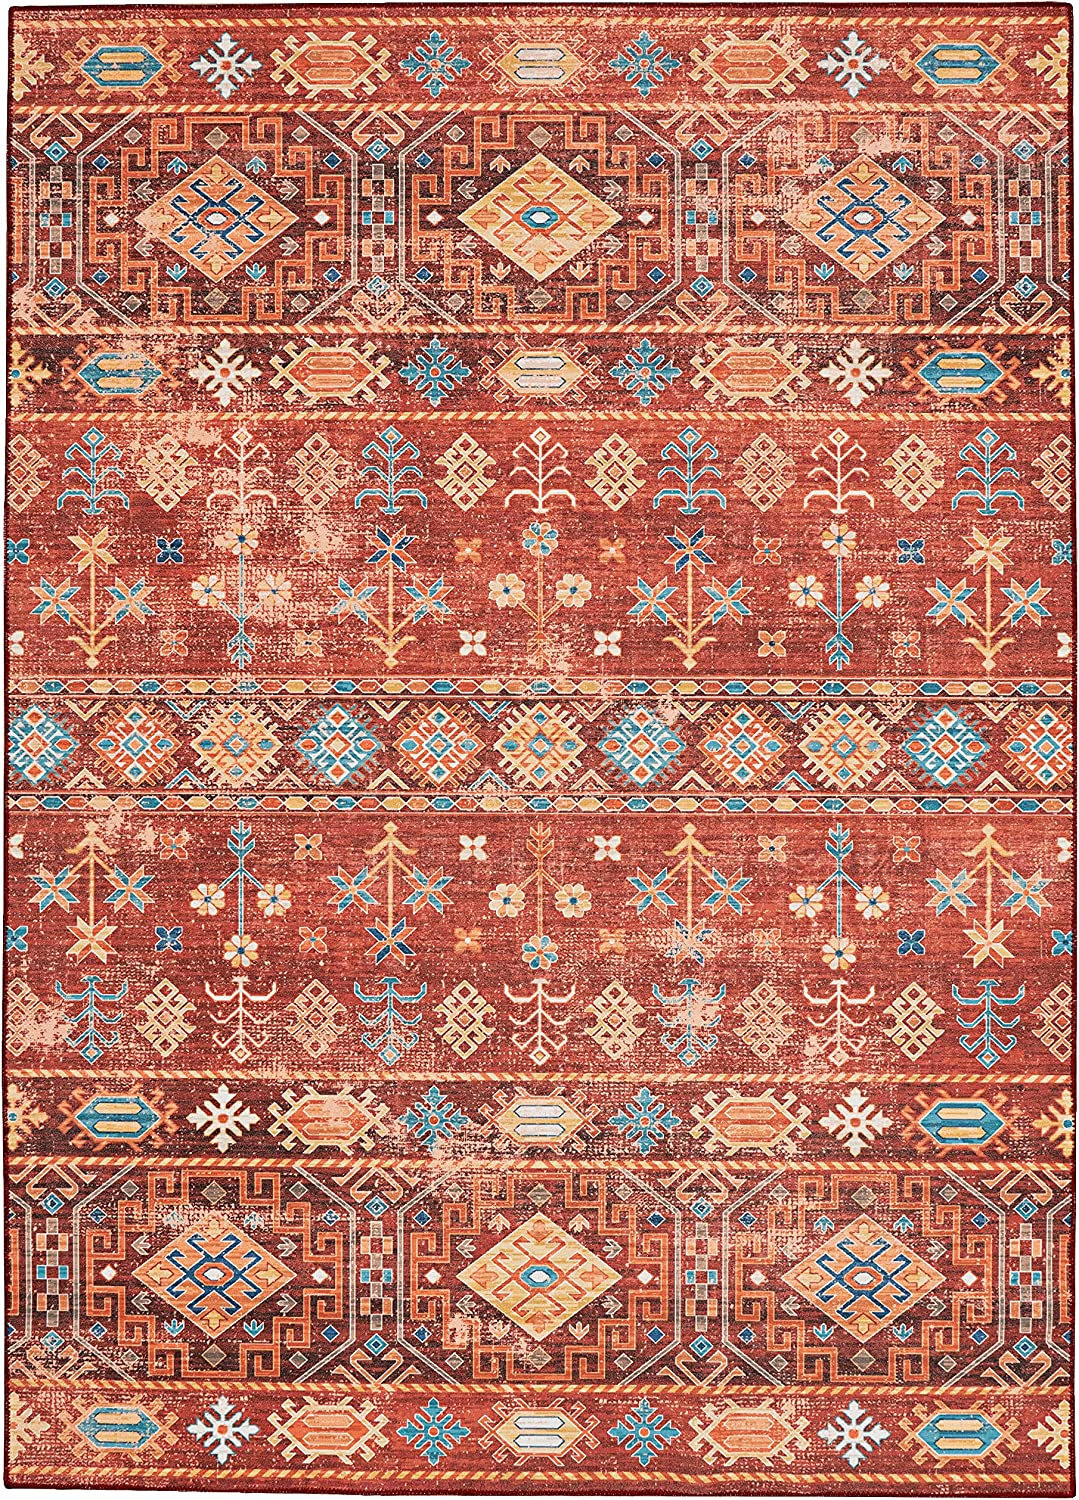 The Anywhere Washable Rug Joelle Red Courier shipping free shipping 7' Tulsa Mall Area X 5' Ivory